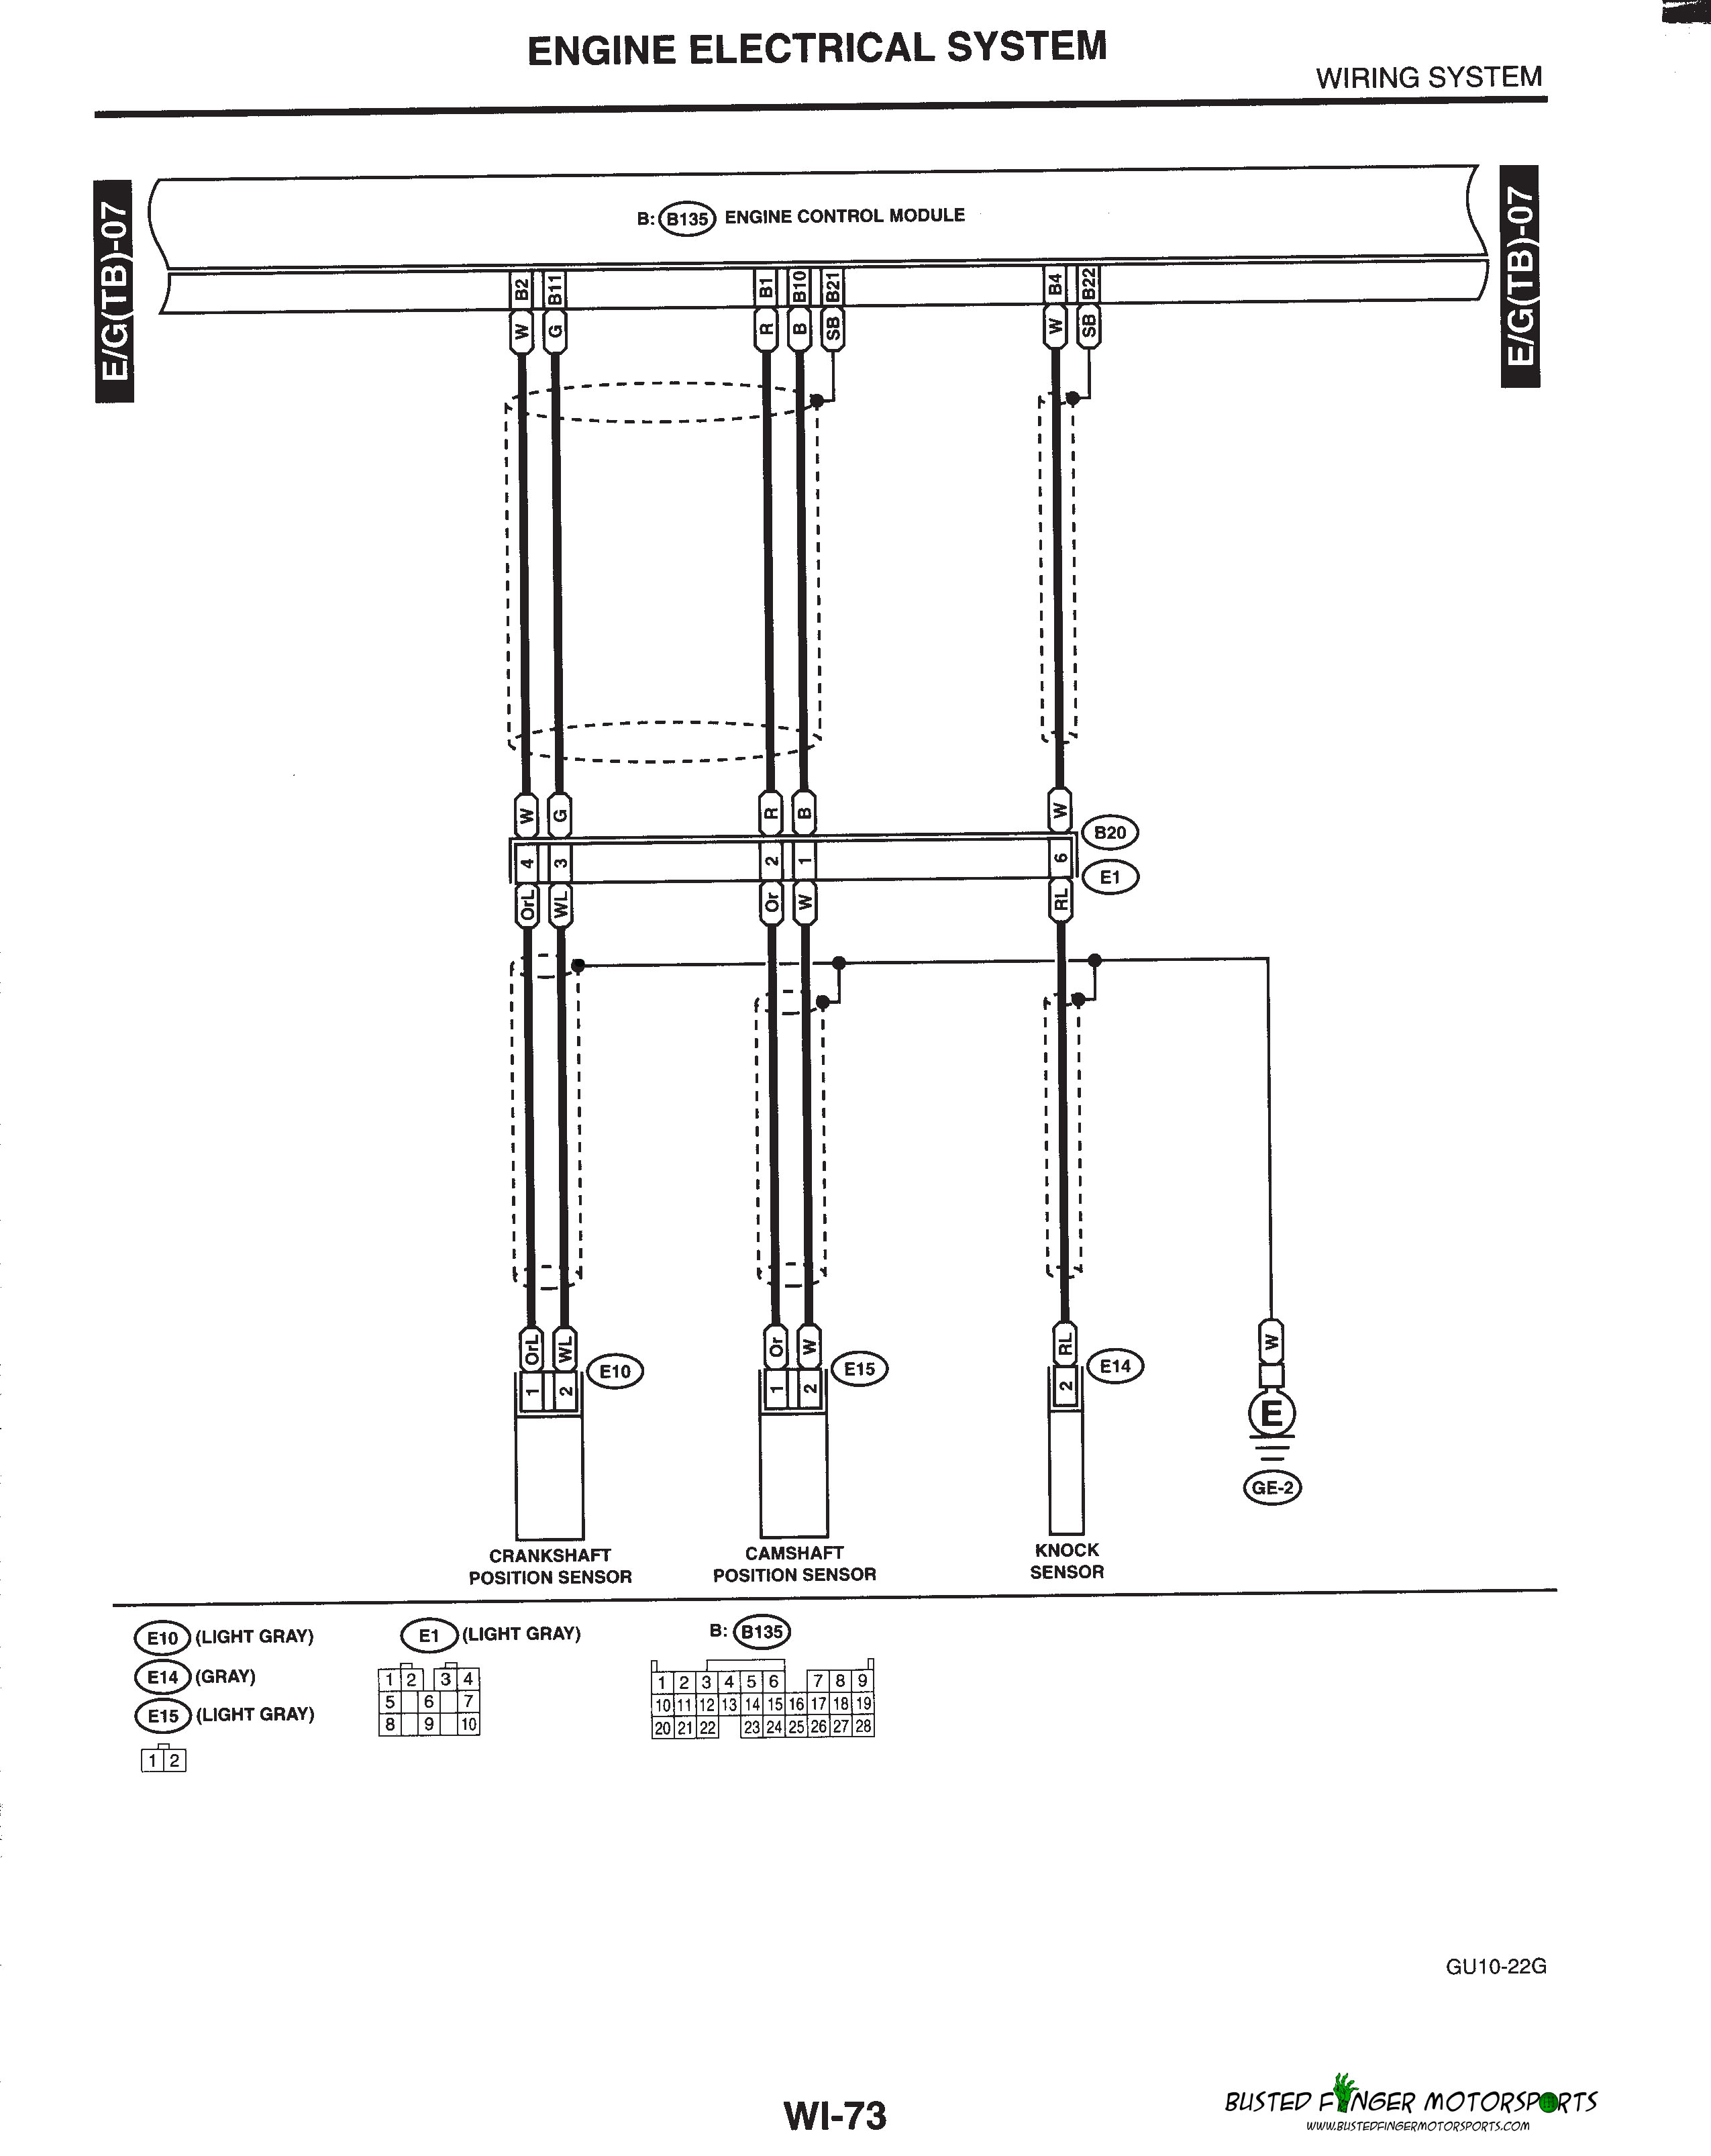 Integra Distributor Wiring Diagram Com